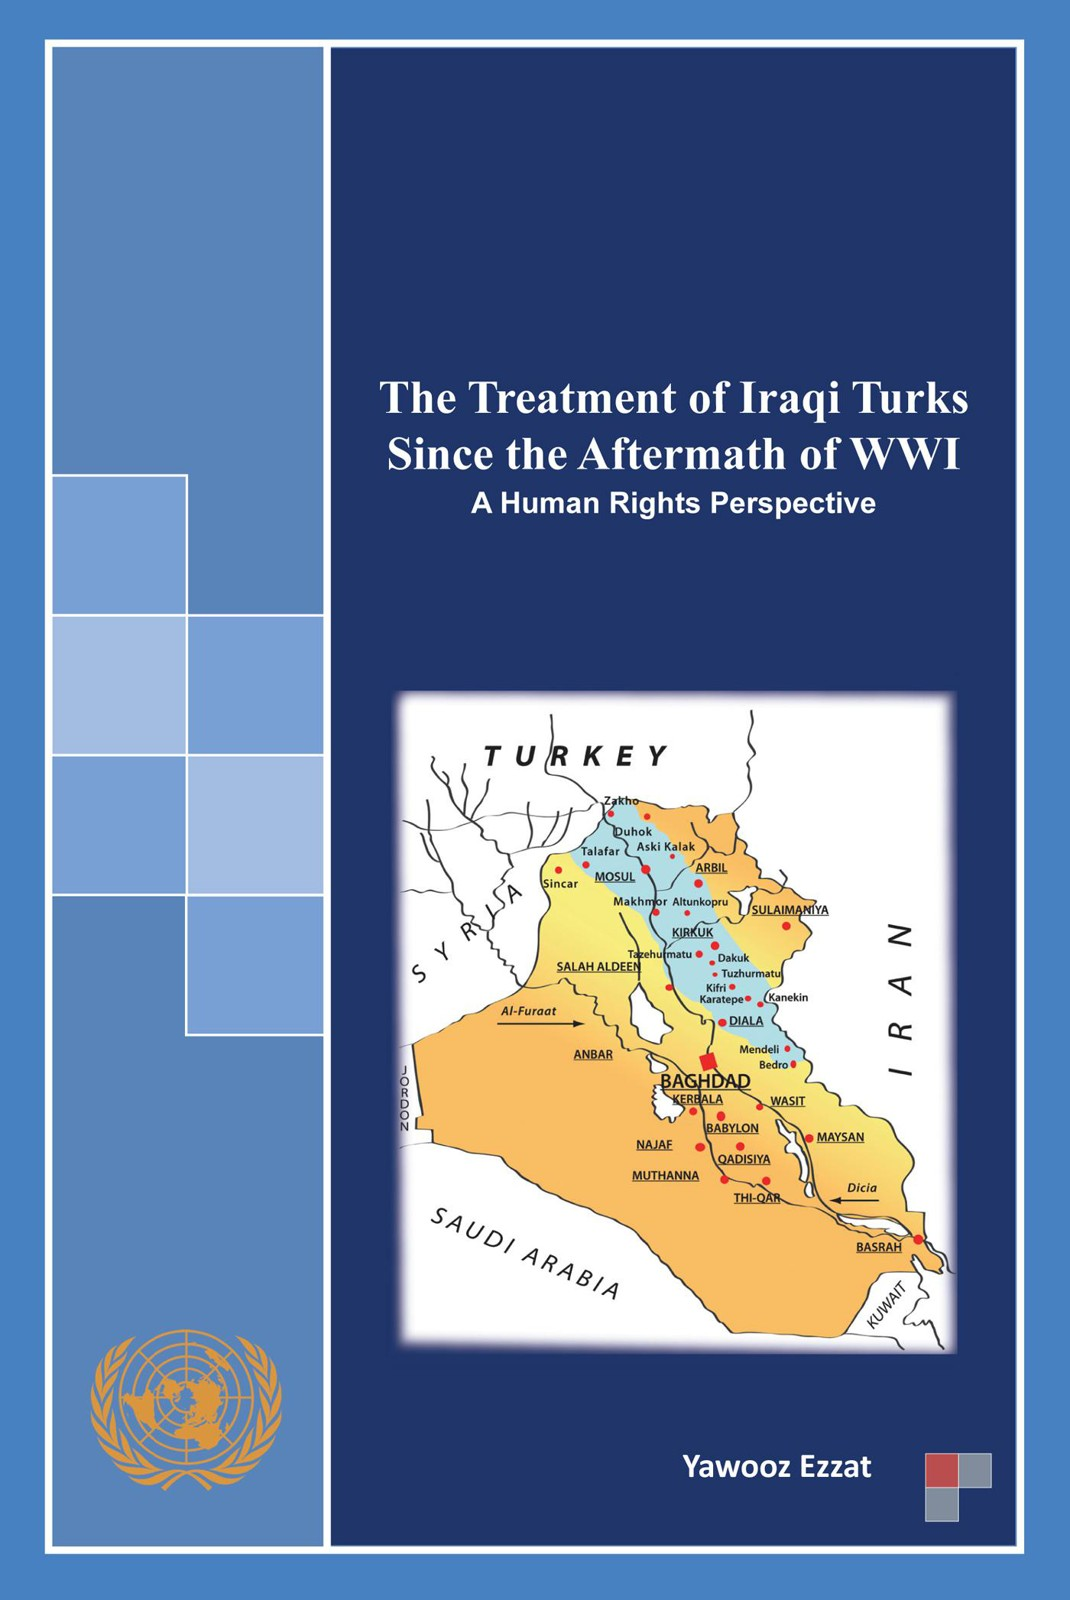 The Treatment of Iraqi Turks Since the Aftermath of WWI By: Yawooz Ezzat